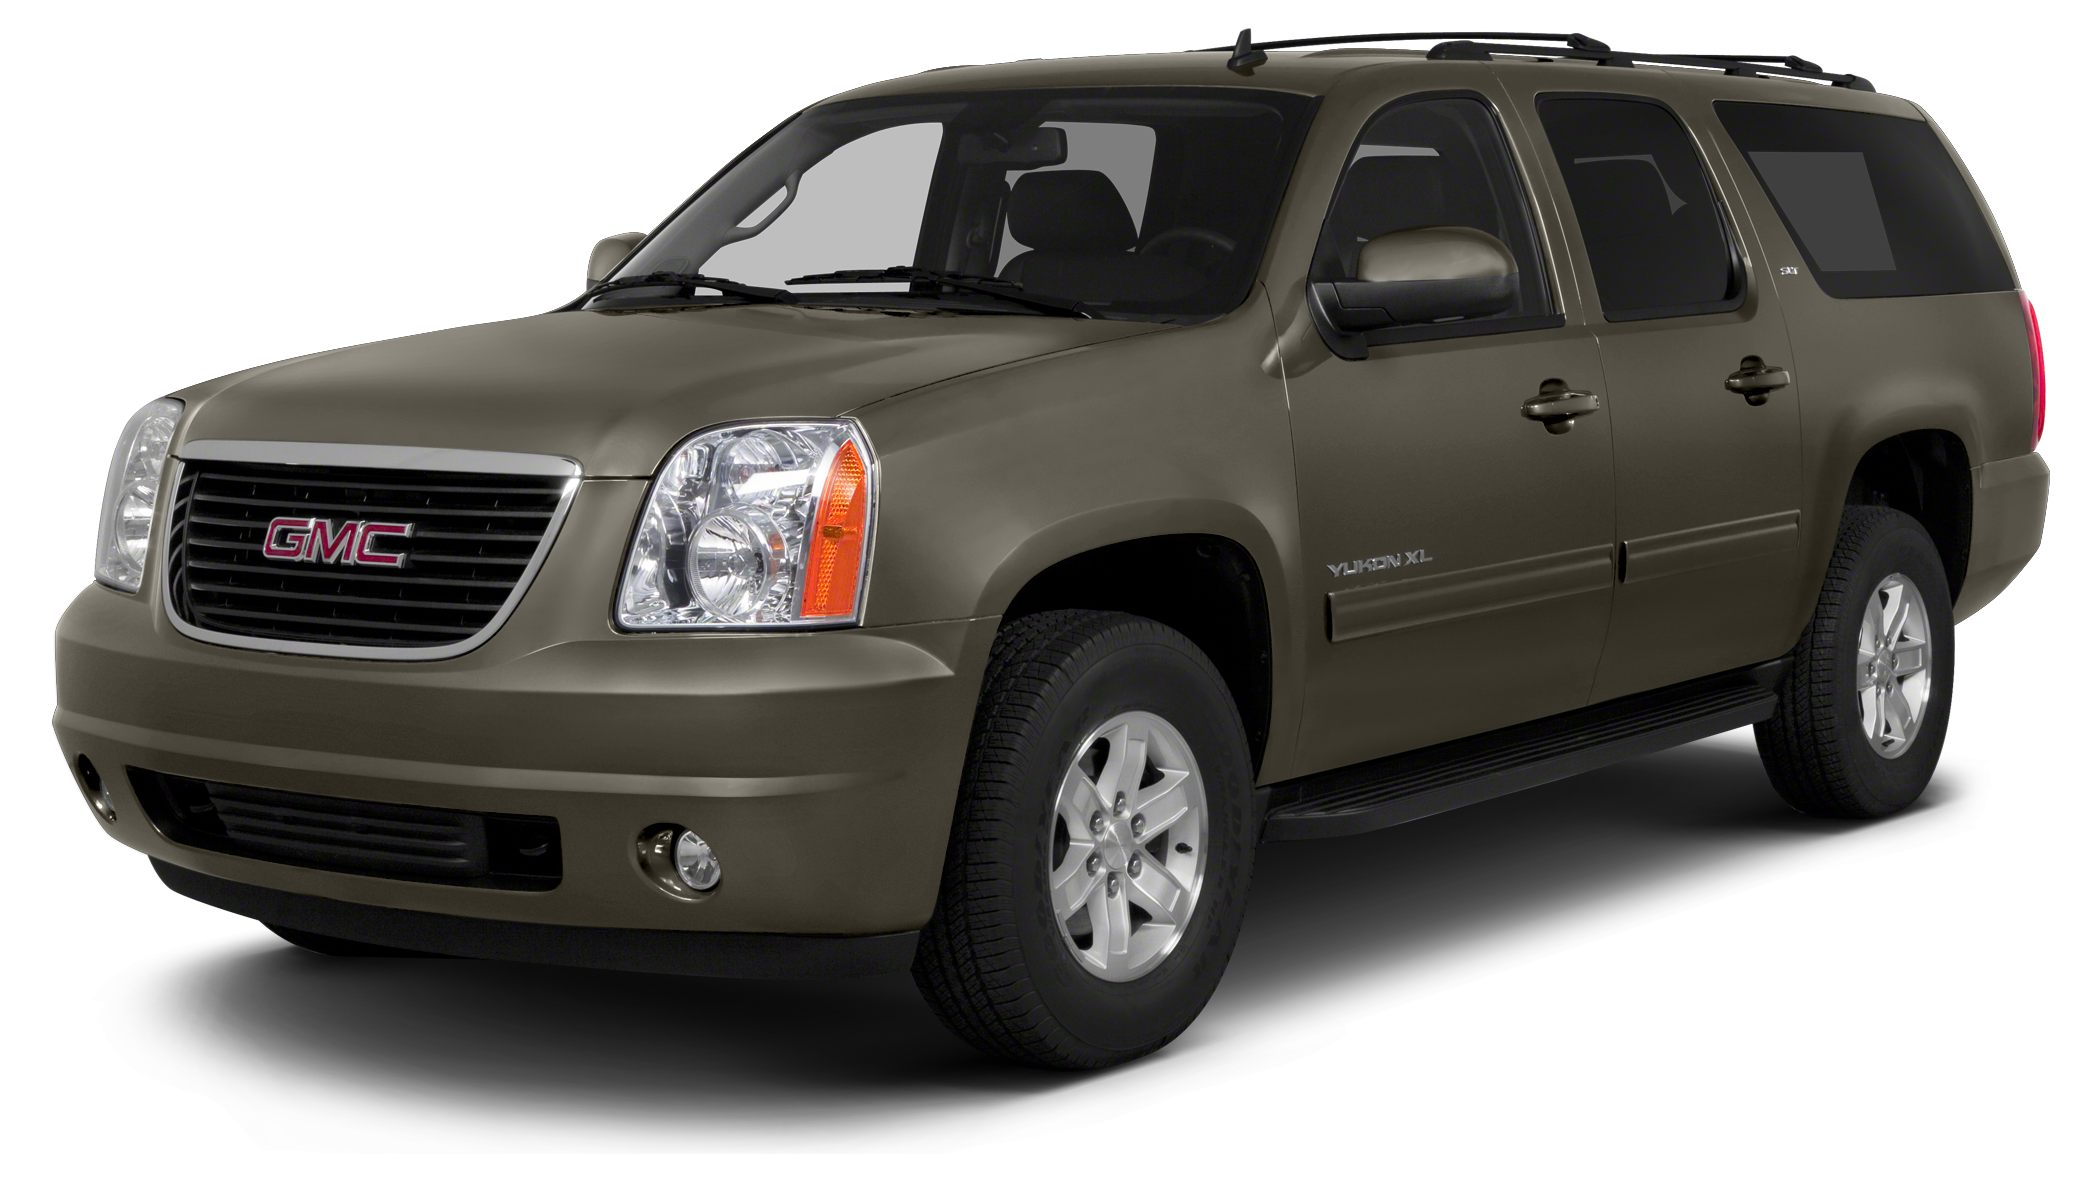 2013 GMC Yukon XL 1500 SLT 4WD Flex Fuel Dont let the miles fool you Dont pay too much for th